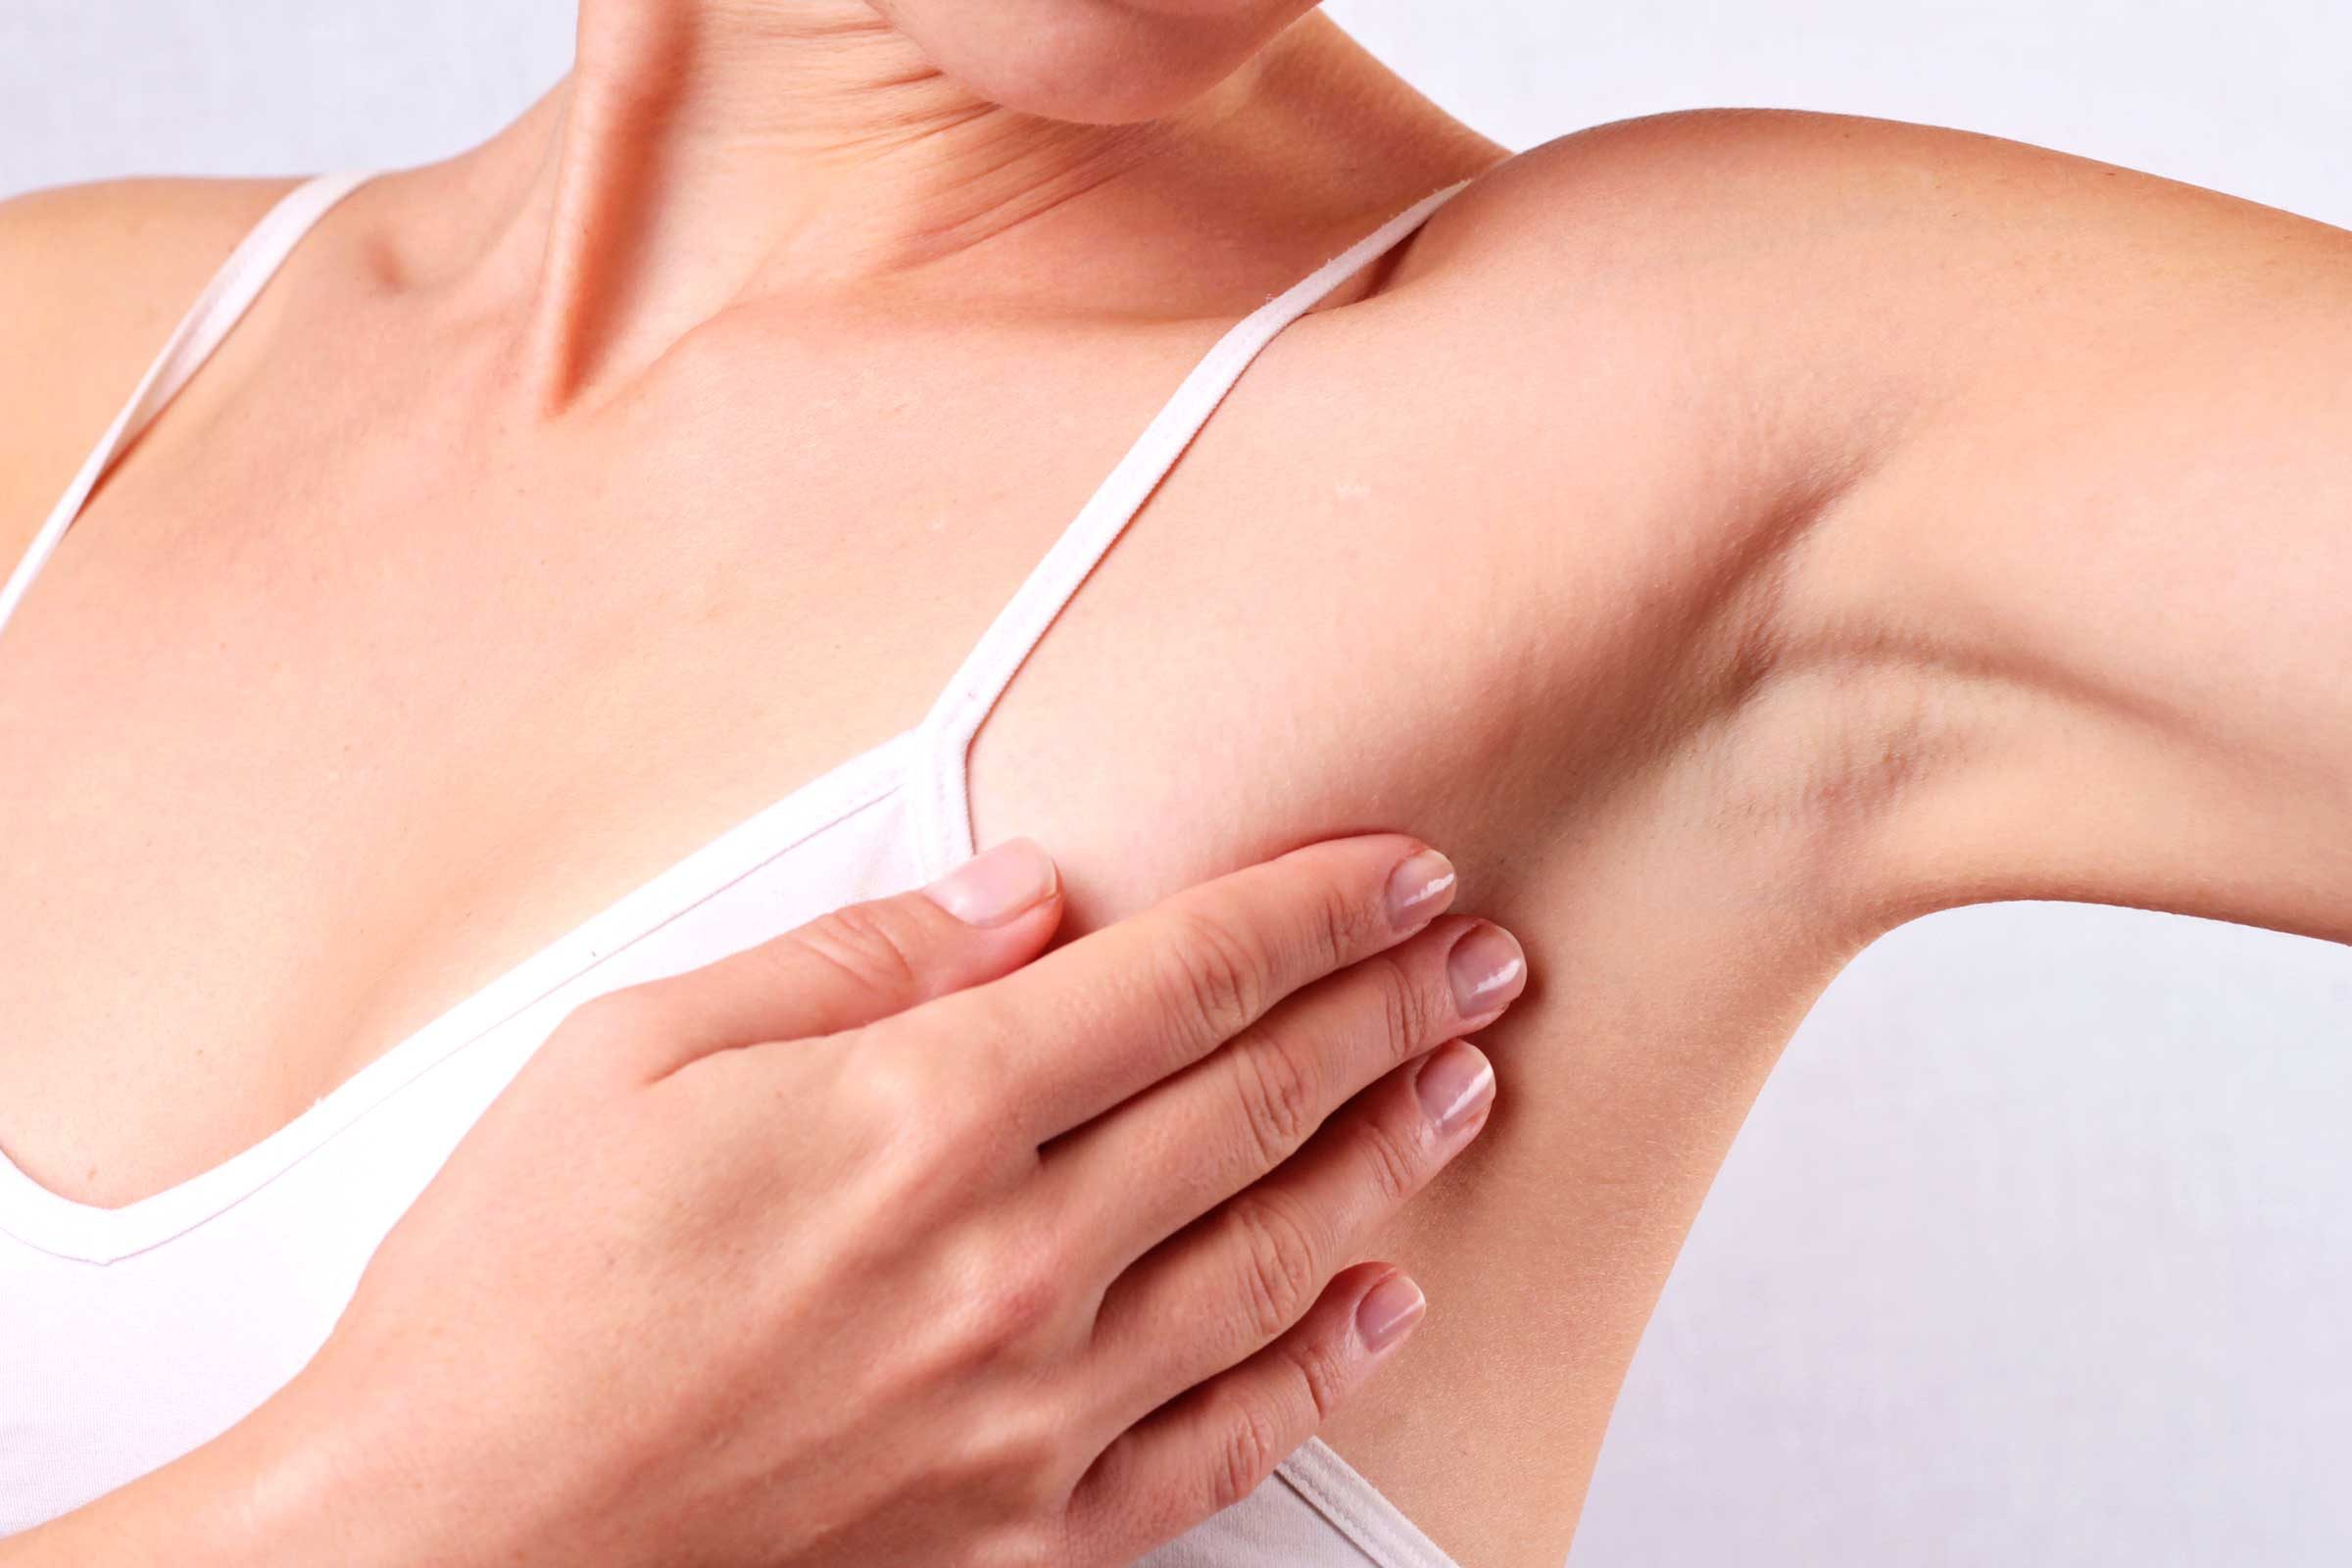 Breast cancer self examination instructional video 1 10